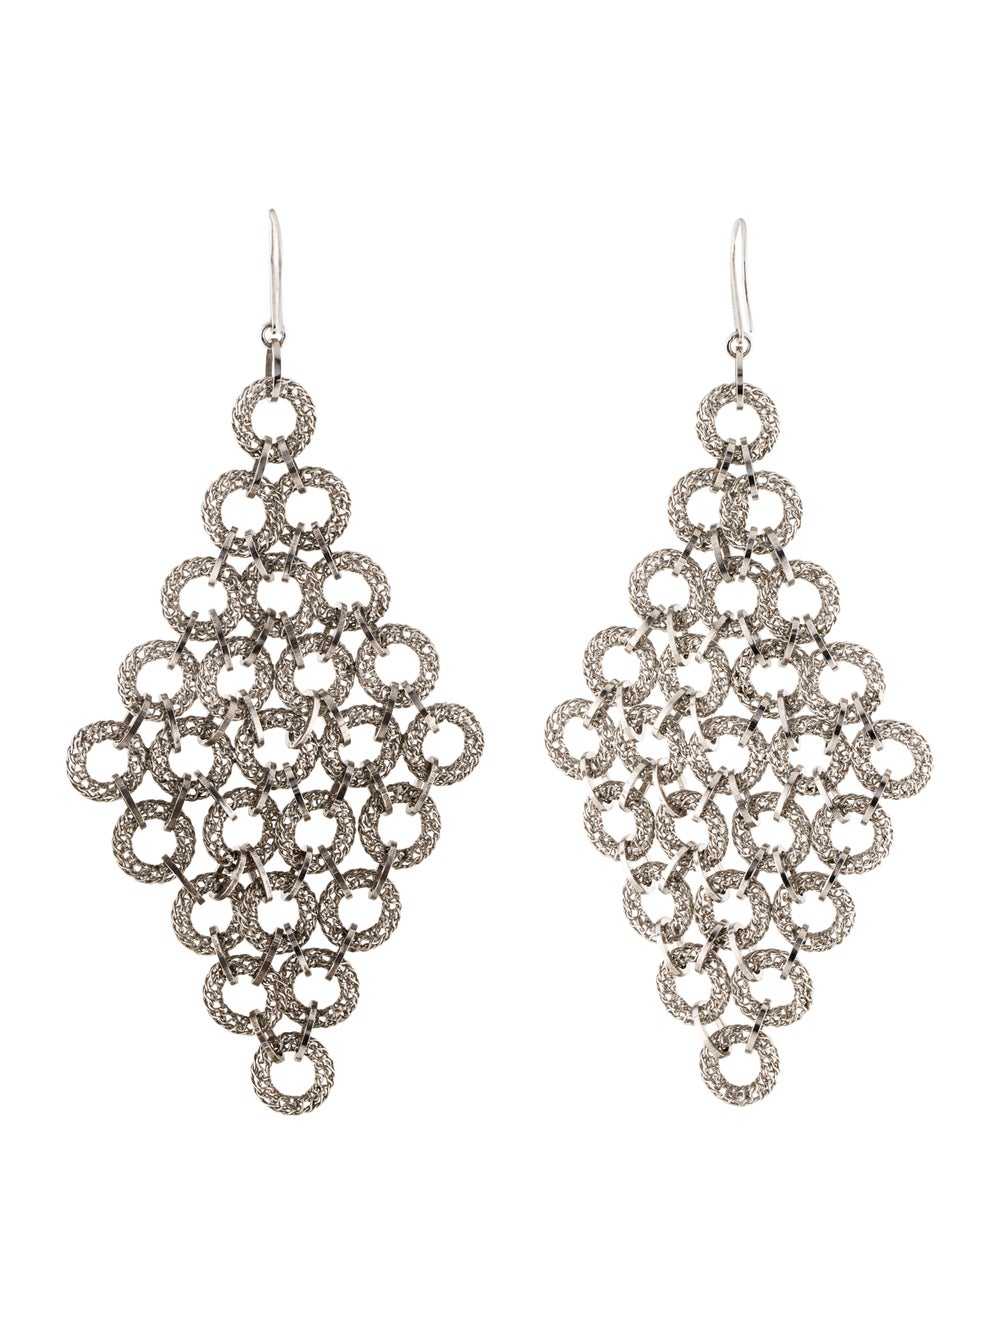 Tateossian Chandelier Earrings silver - image 4